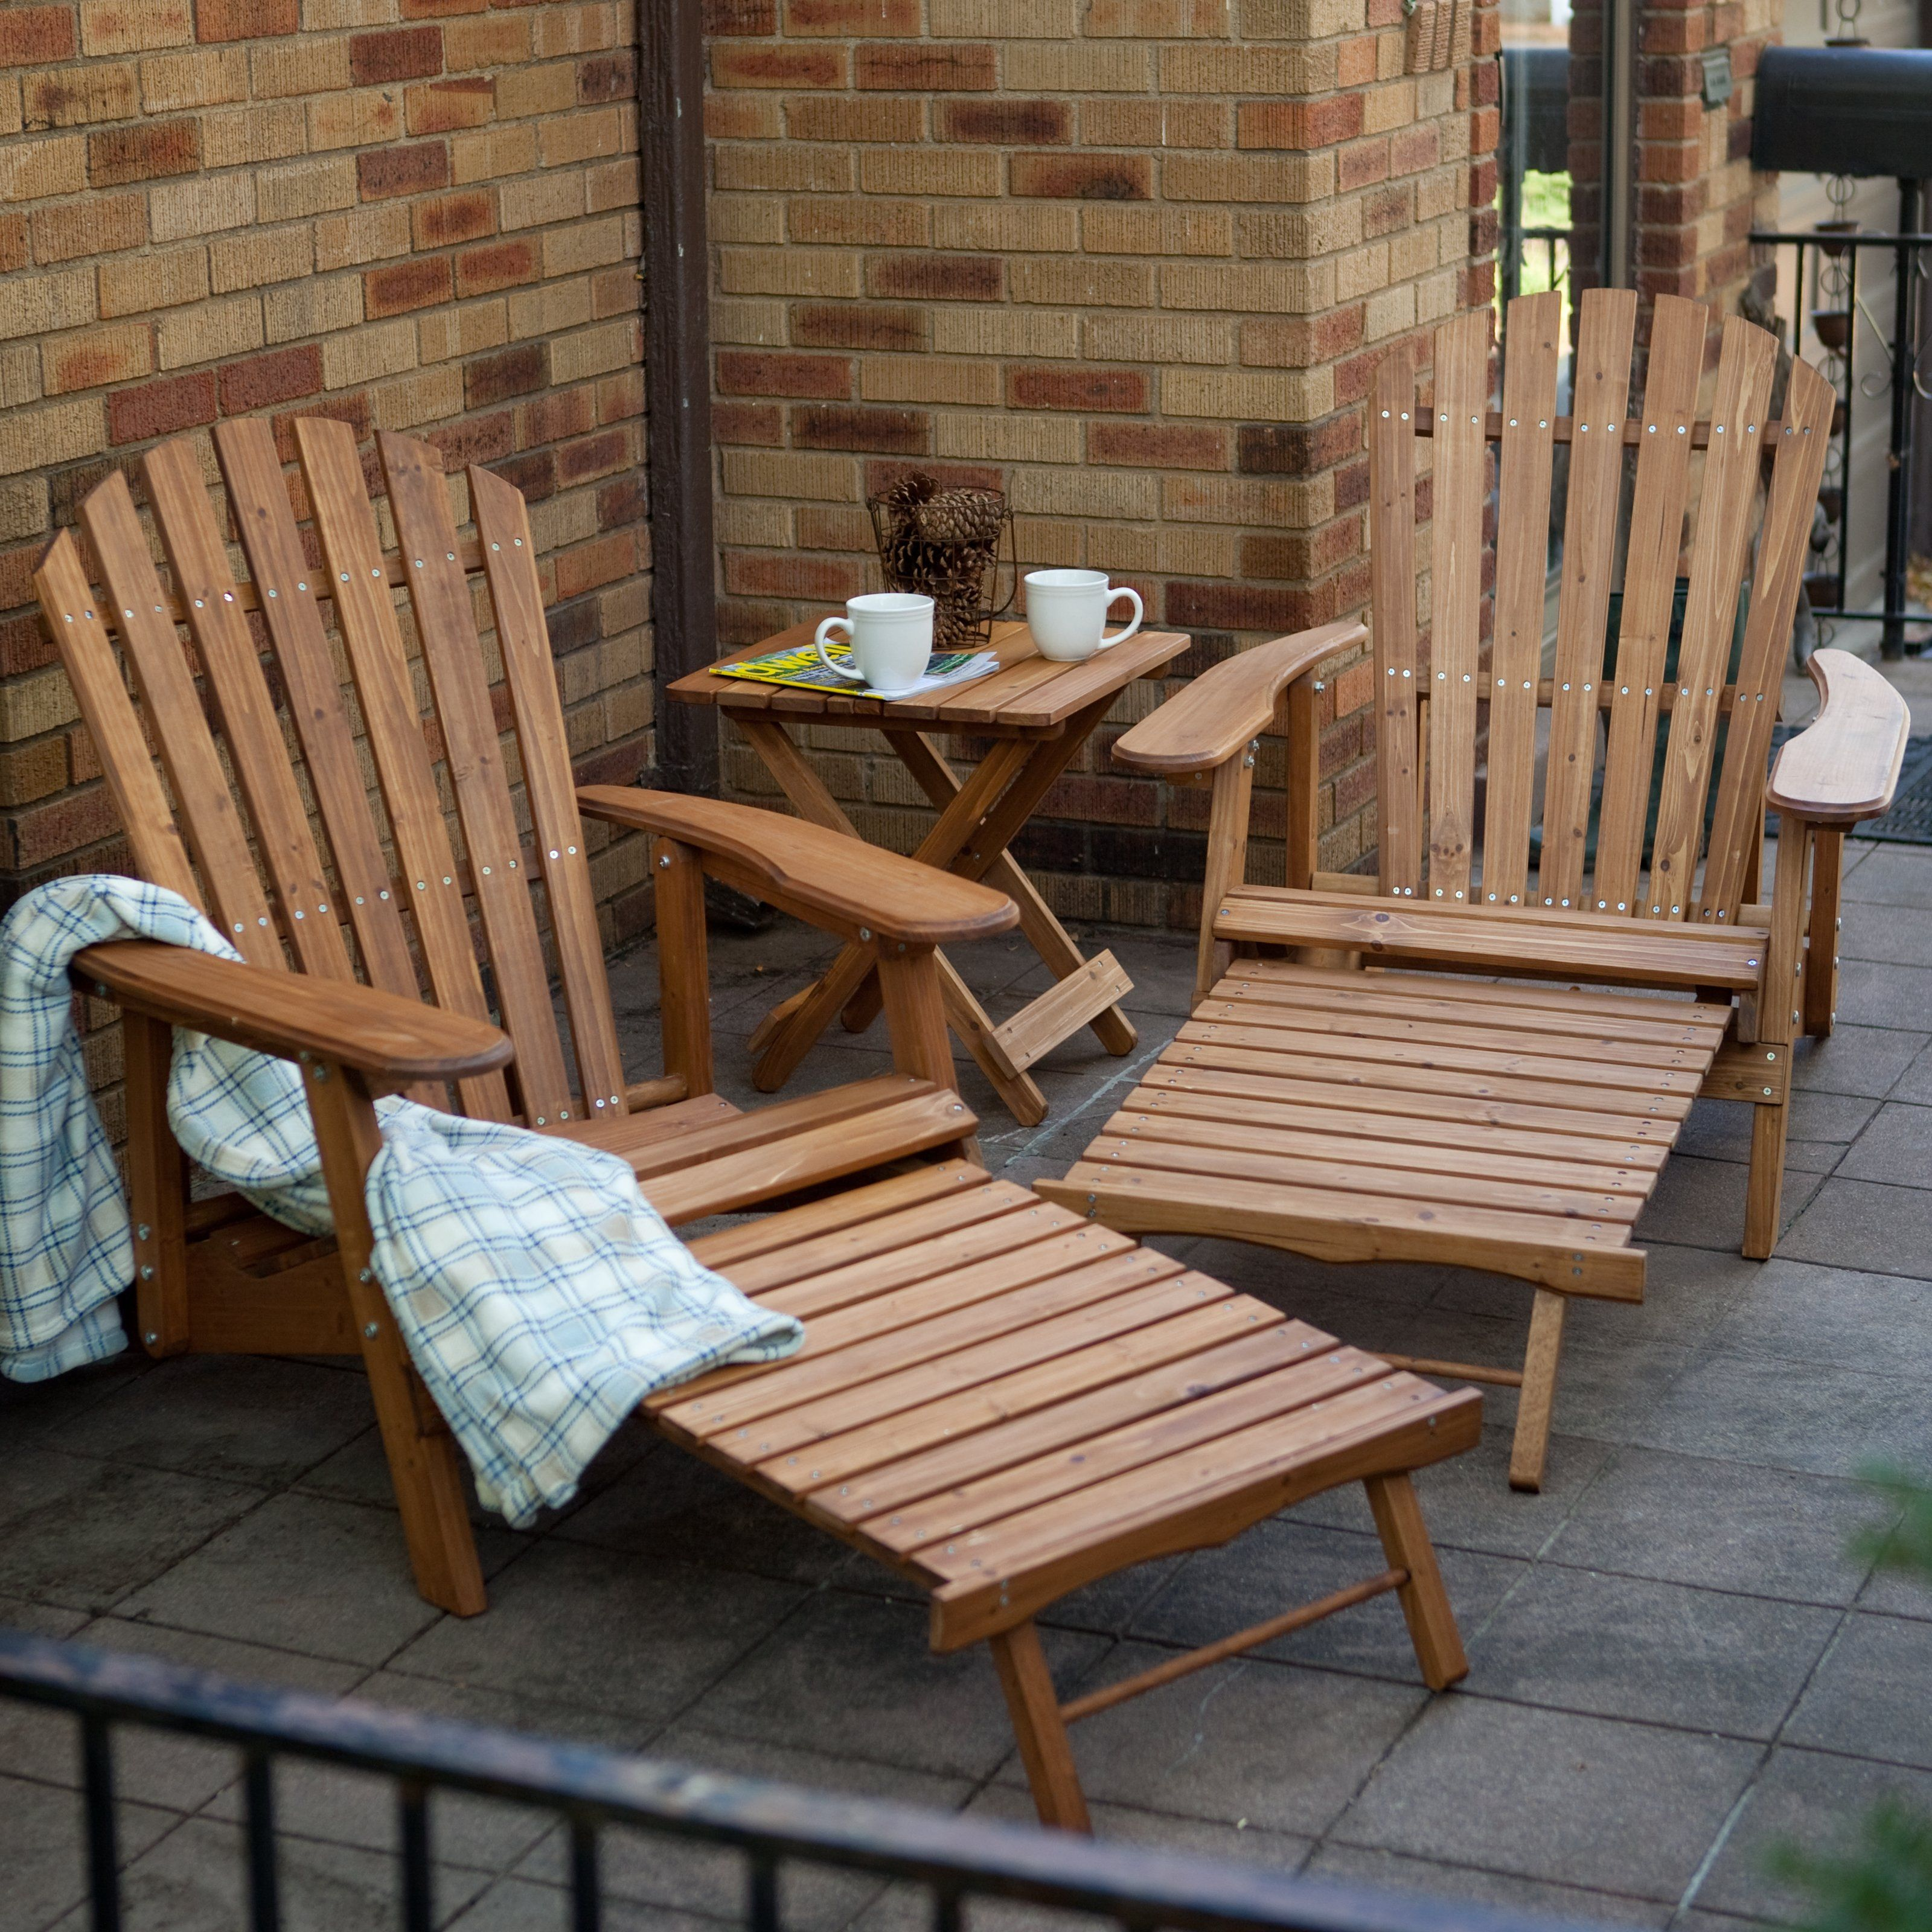 Patio Daddy O Furniture: Have To Have It. Grand Daddy Oversized Adirondack Chair